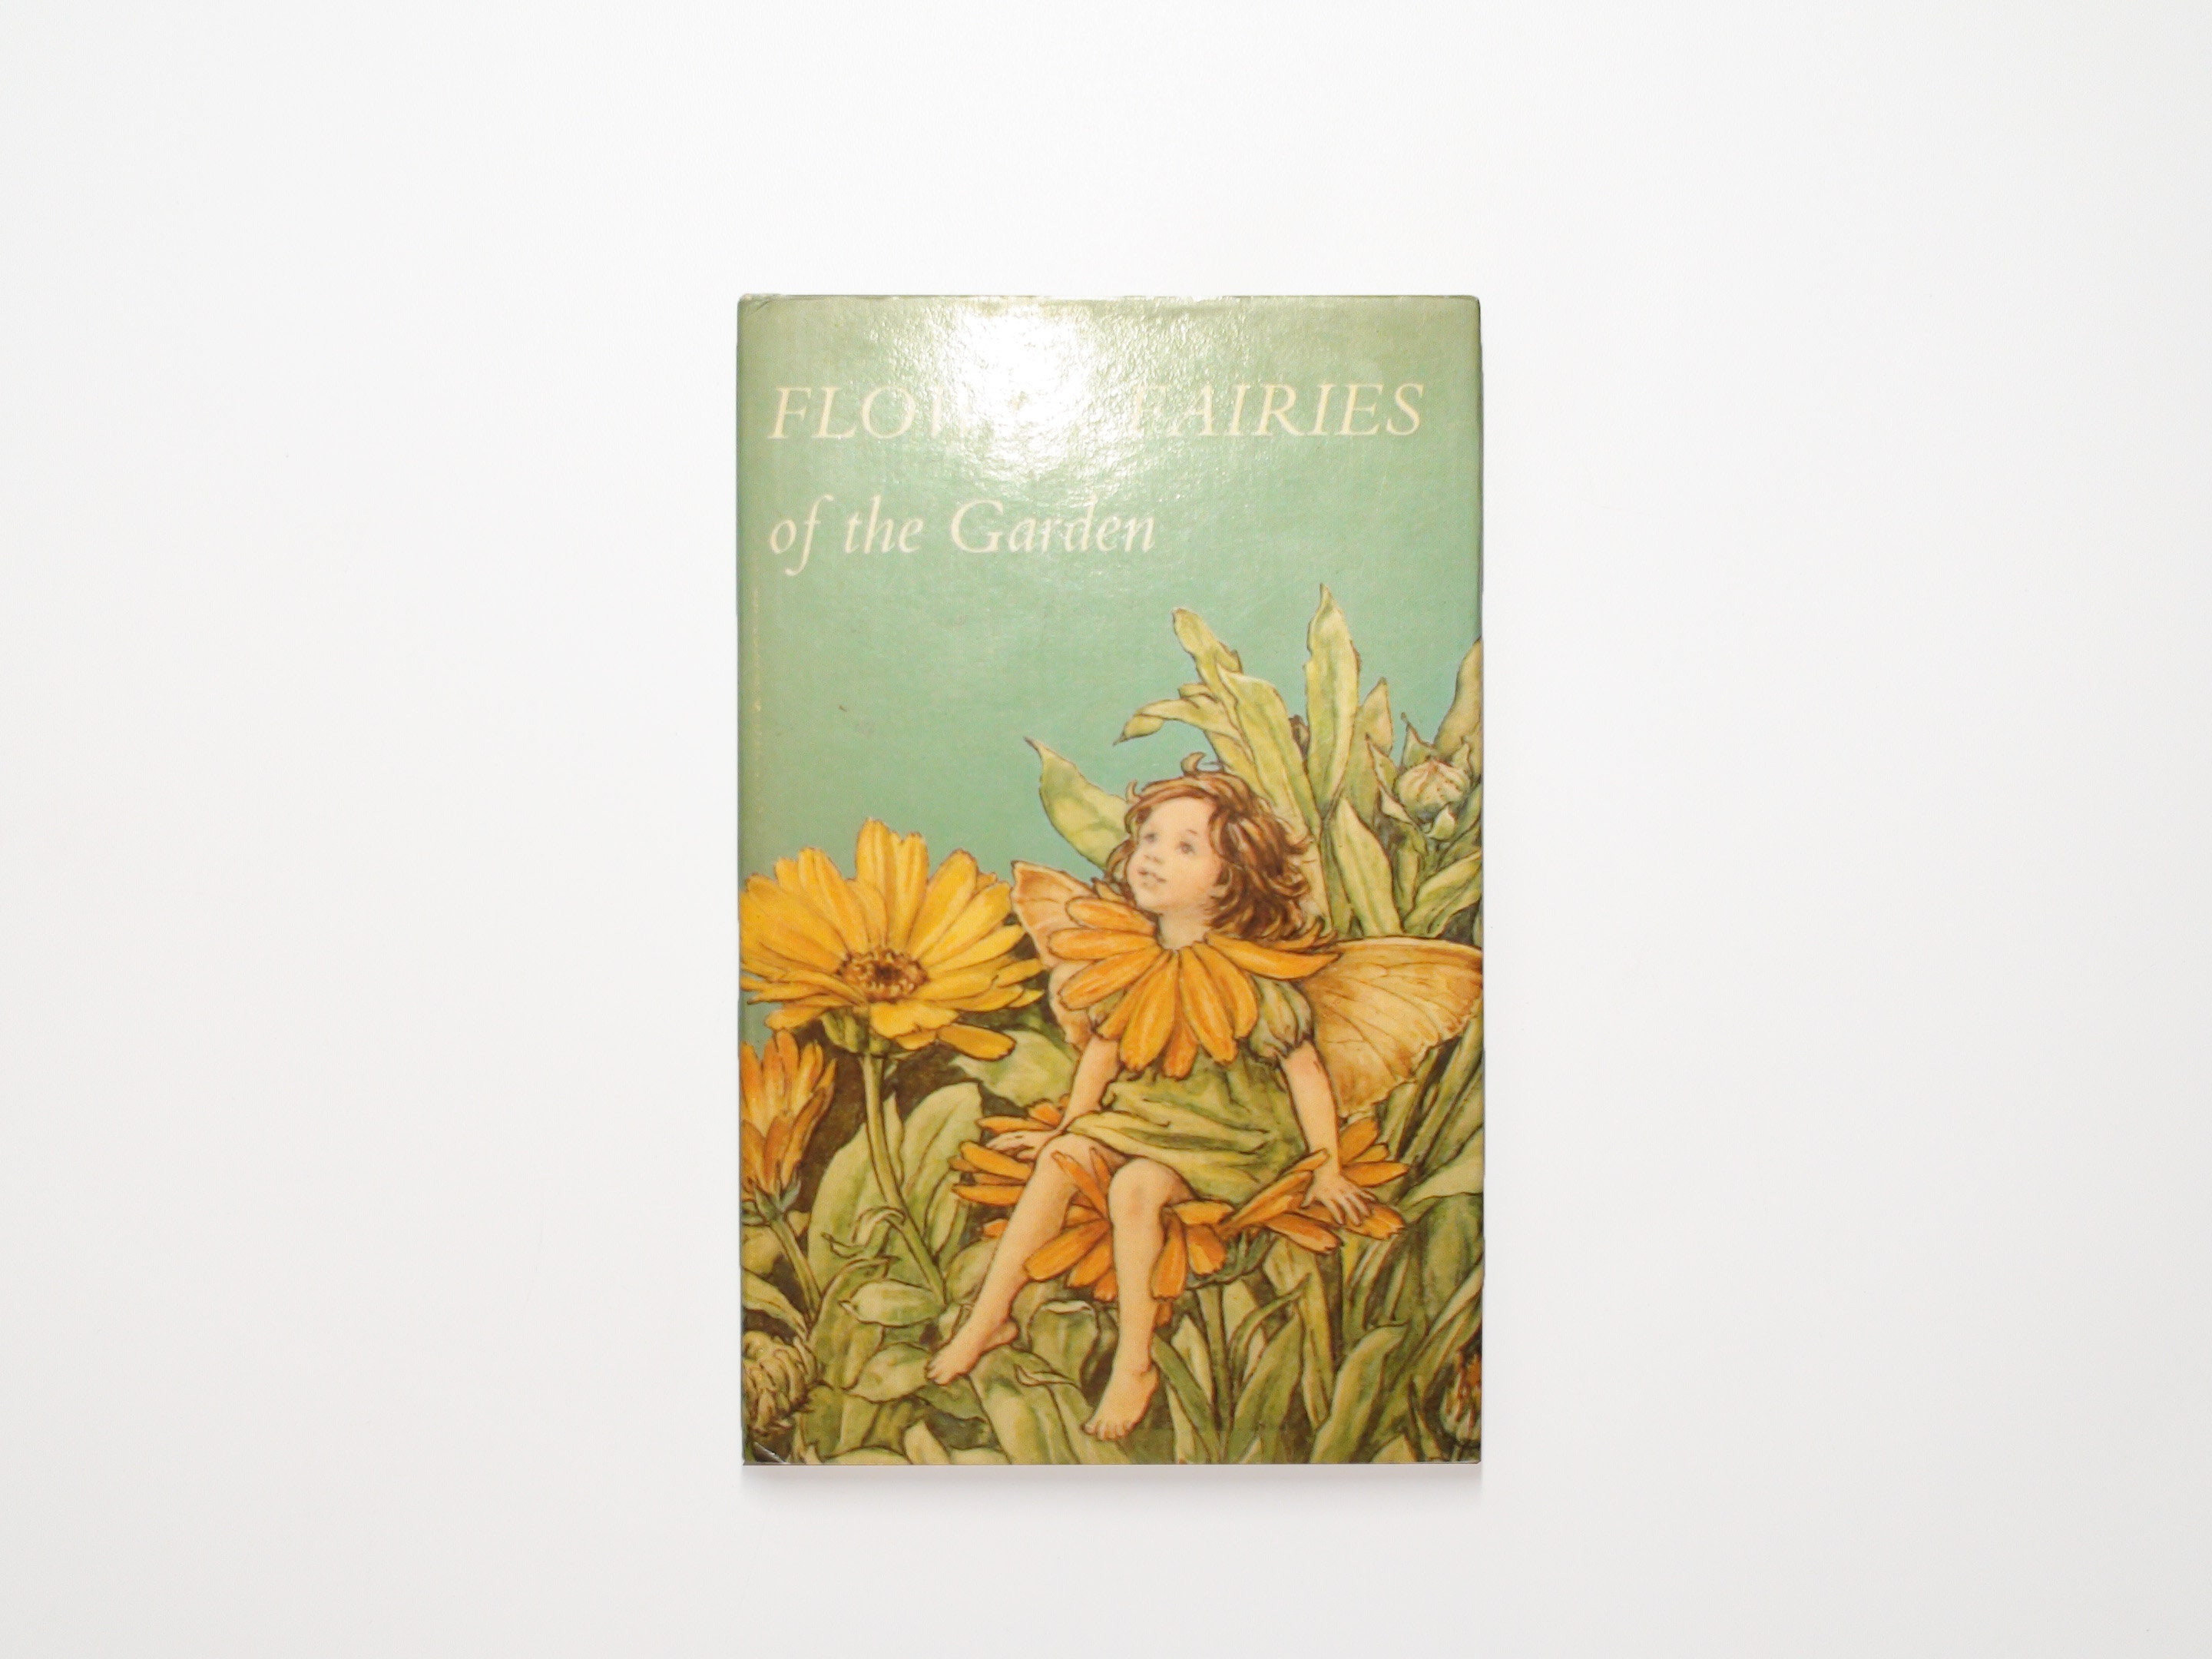 flower fairies of the garden, by cicely mary barker, illustrated, 1st ed w  dj